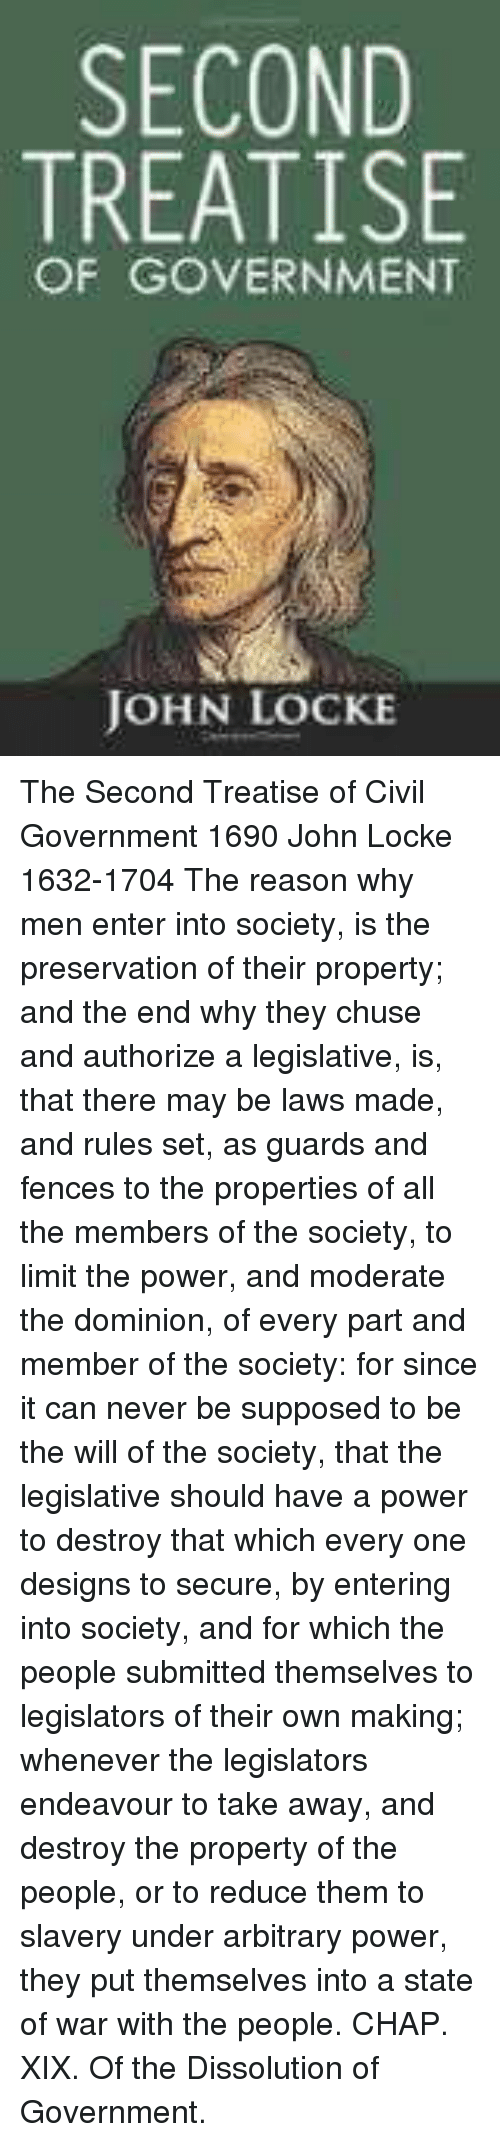 a discussion on natural equality and civil society in second treatise of government by john locke John locke two treatises of government 1690 the second treatise of civil government but though every man who has entered into civil society.